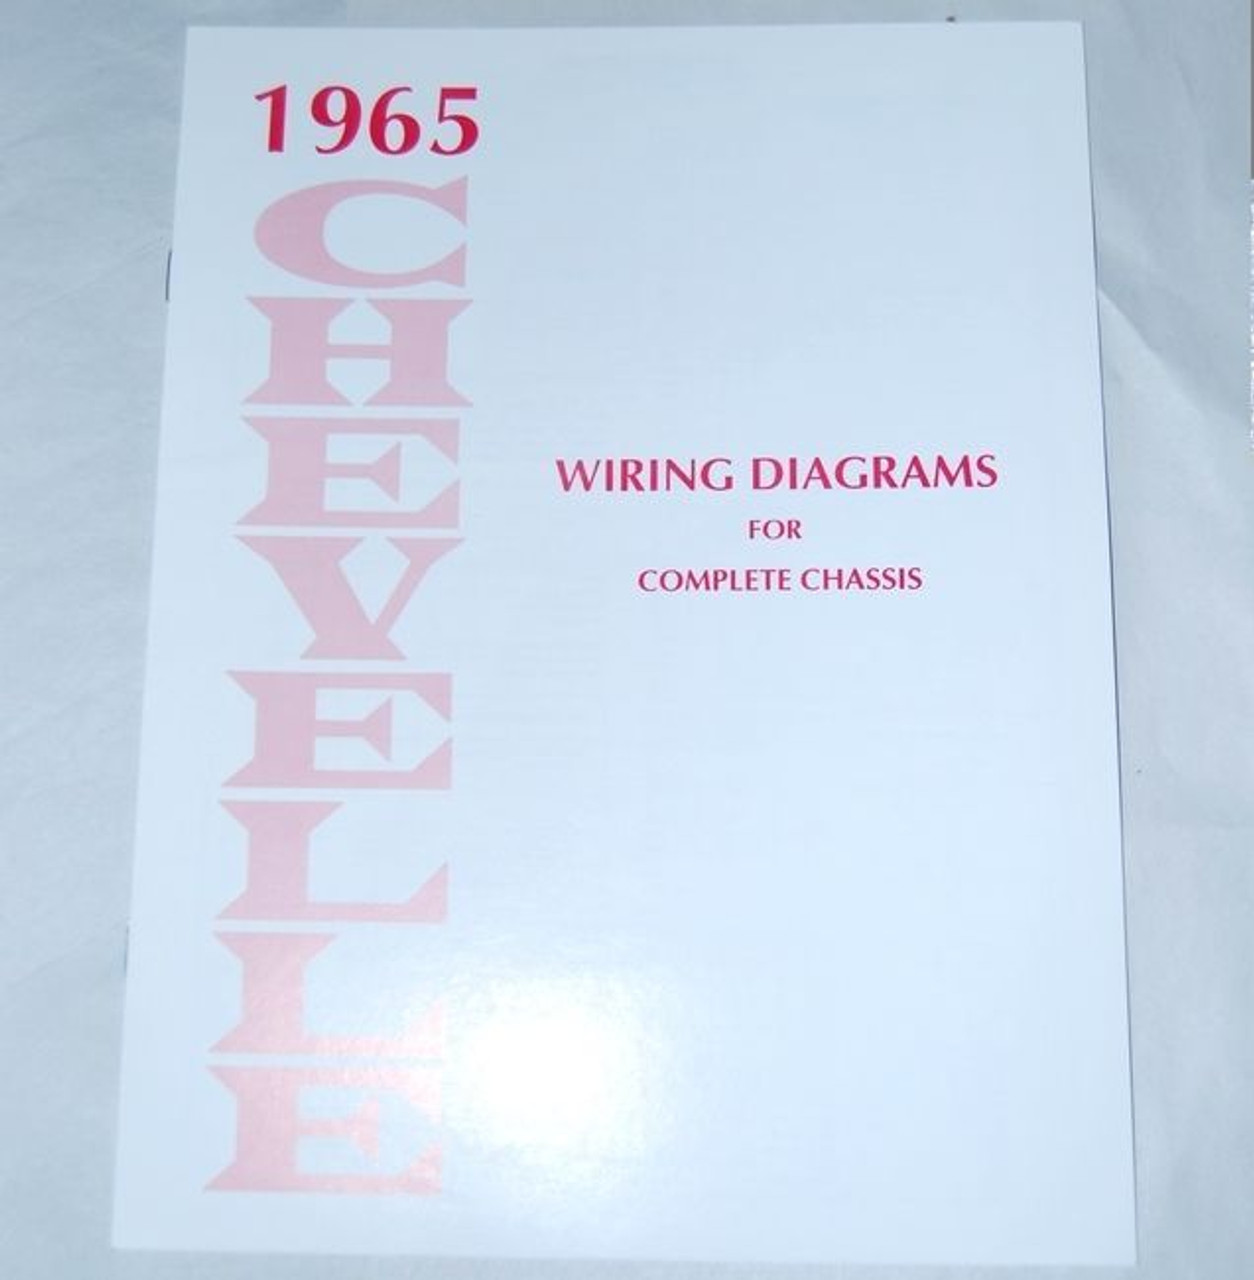 Chevelle electrical wiring diagram wiring diagrams 65 chevelle el camino electrical wiring diagram manual 1965 i 5 65 chevelle el camino electrical wiring diagram manual 1965 chevelle electrical wiring fandeluxe Images